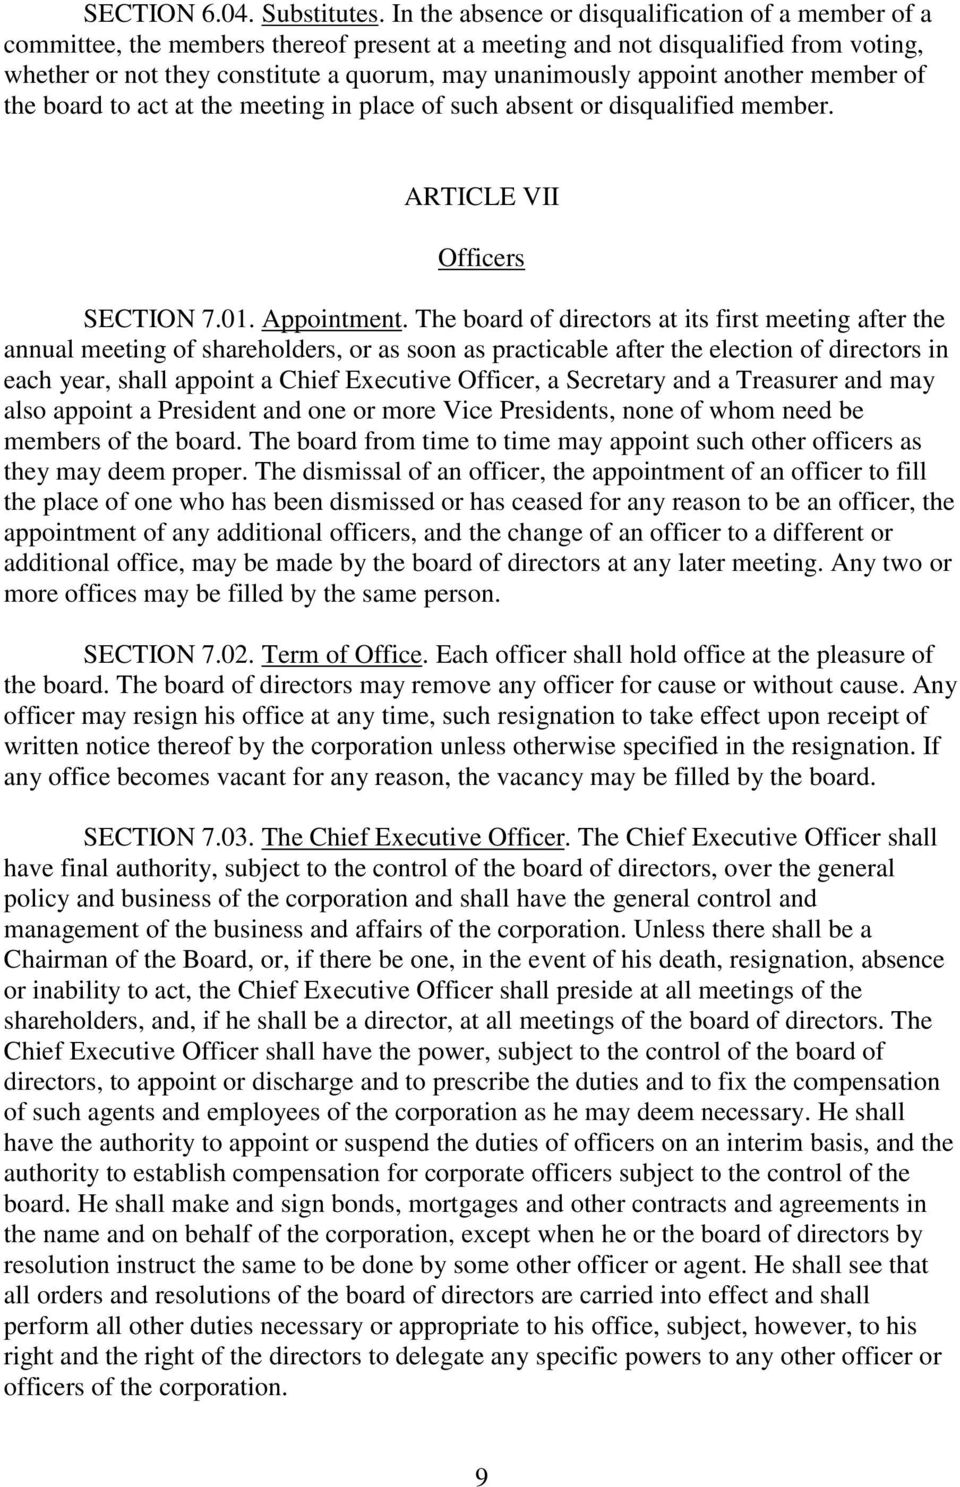 appoint another member of the board to act at the meeting in place of such absent or disqualified member. ARTICLE VII Officers SECTION 7.01. Appointment.